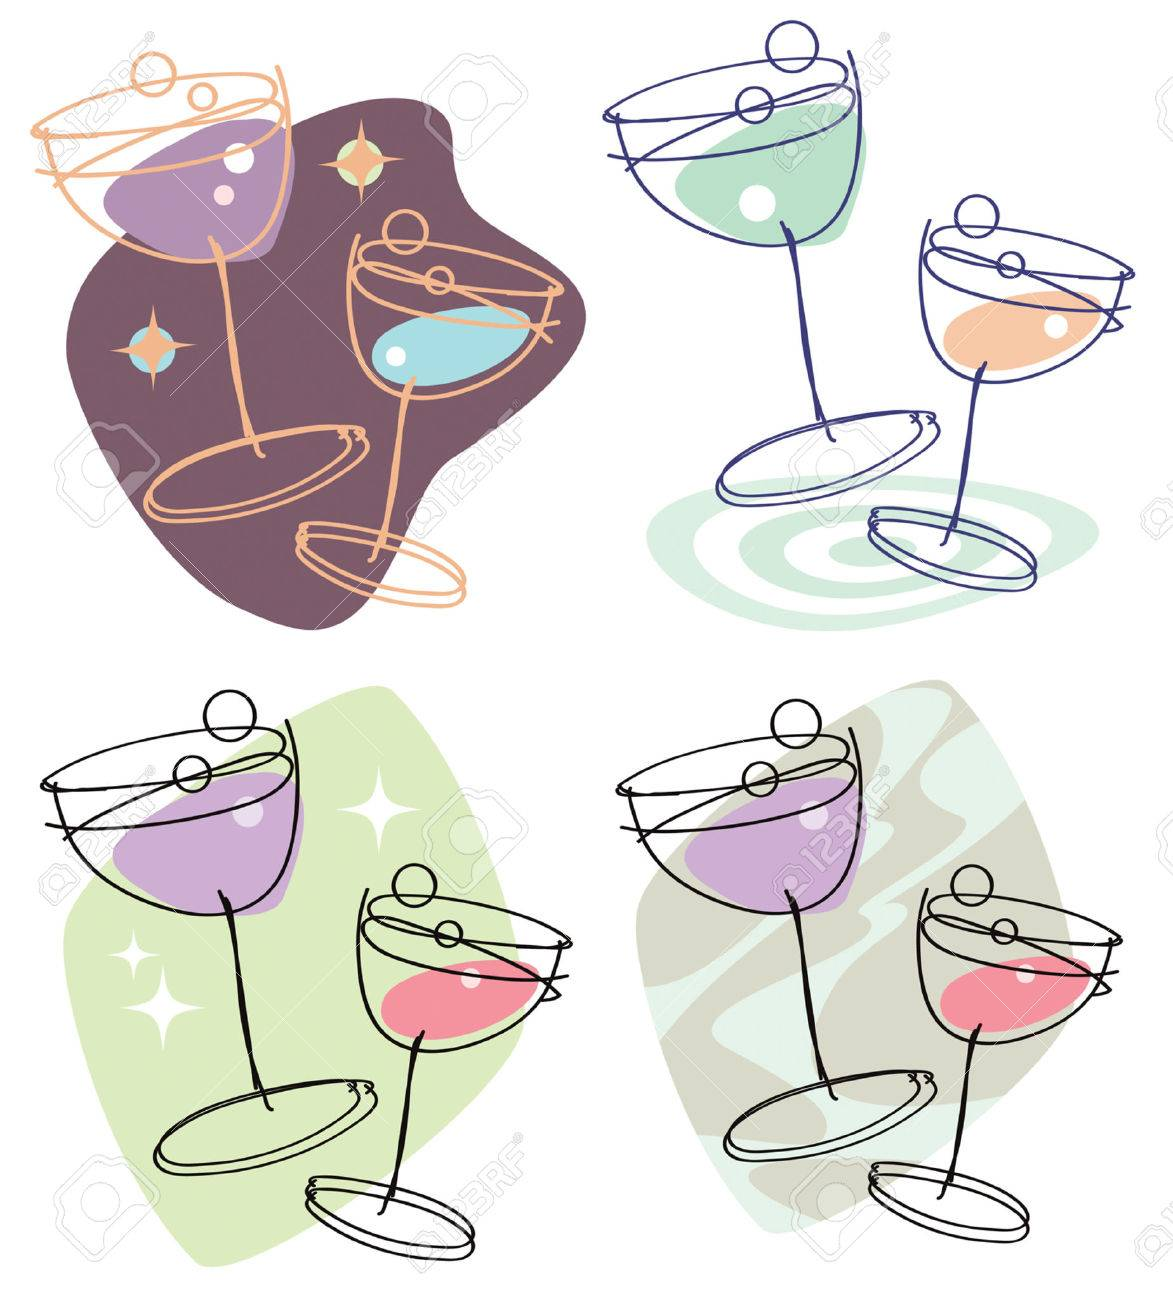 Set of 4 stylish line-drawing illustrations showing two wine glasses with differing colors and backgrounds. Easily editable. Stock Vector - 4400194